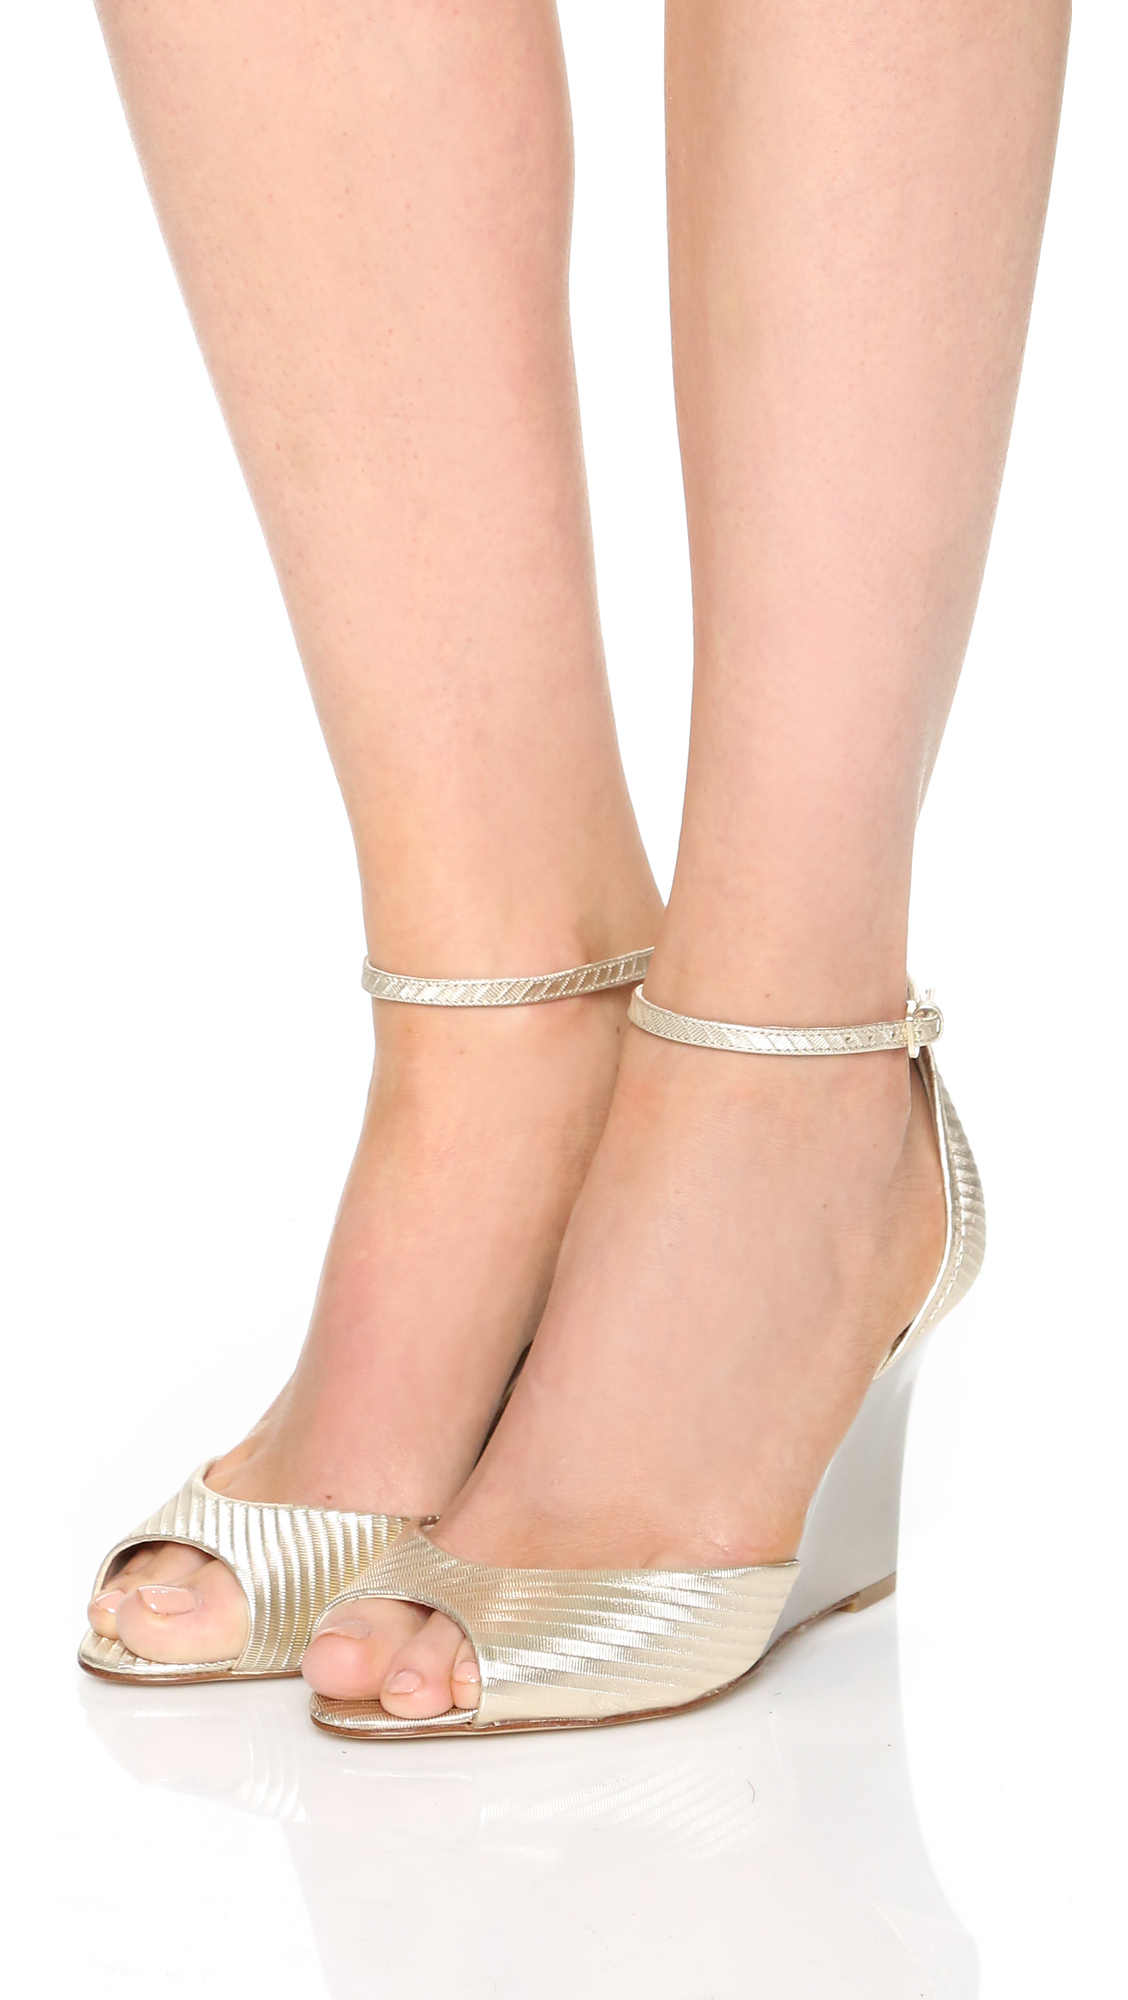 0951e3684e L.K.Bennett Coco Wedge Sandals in Metallic - Lyst